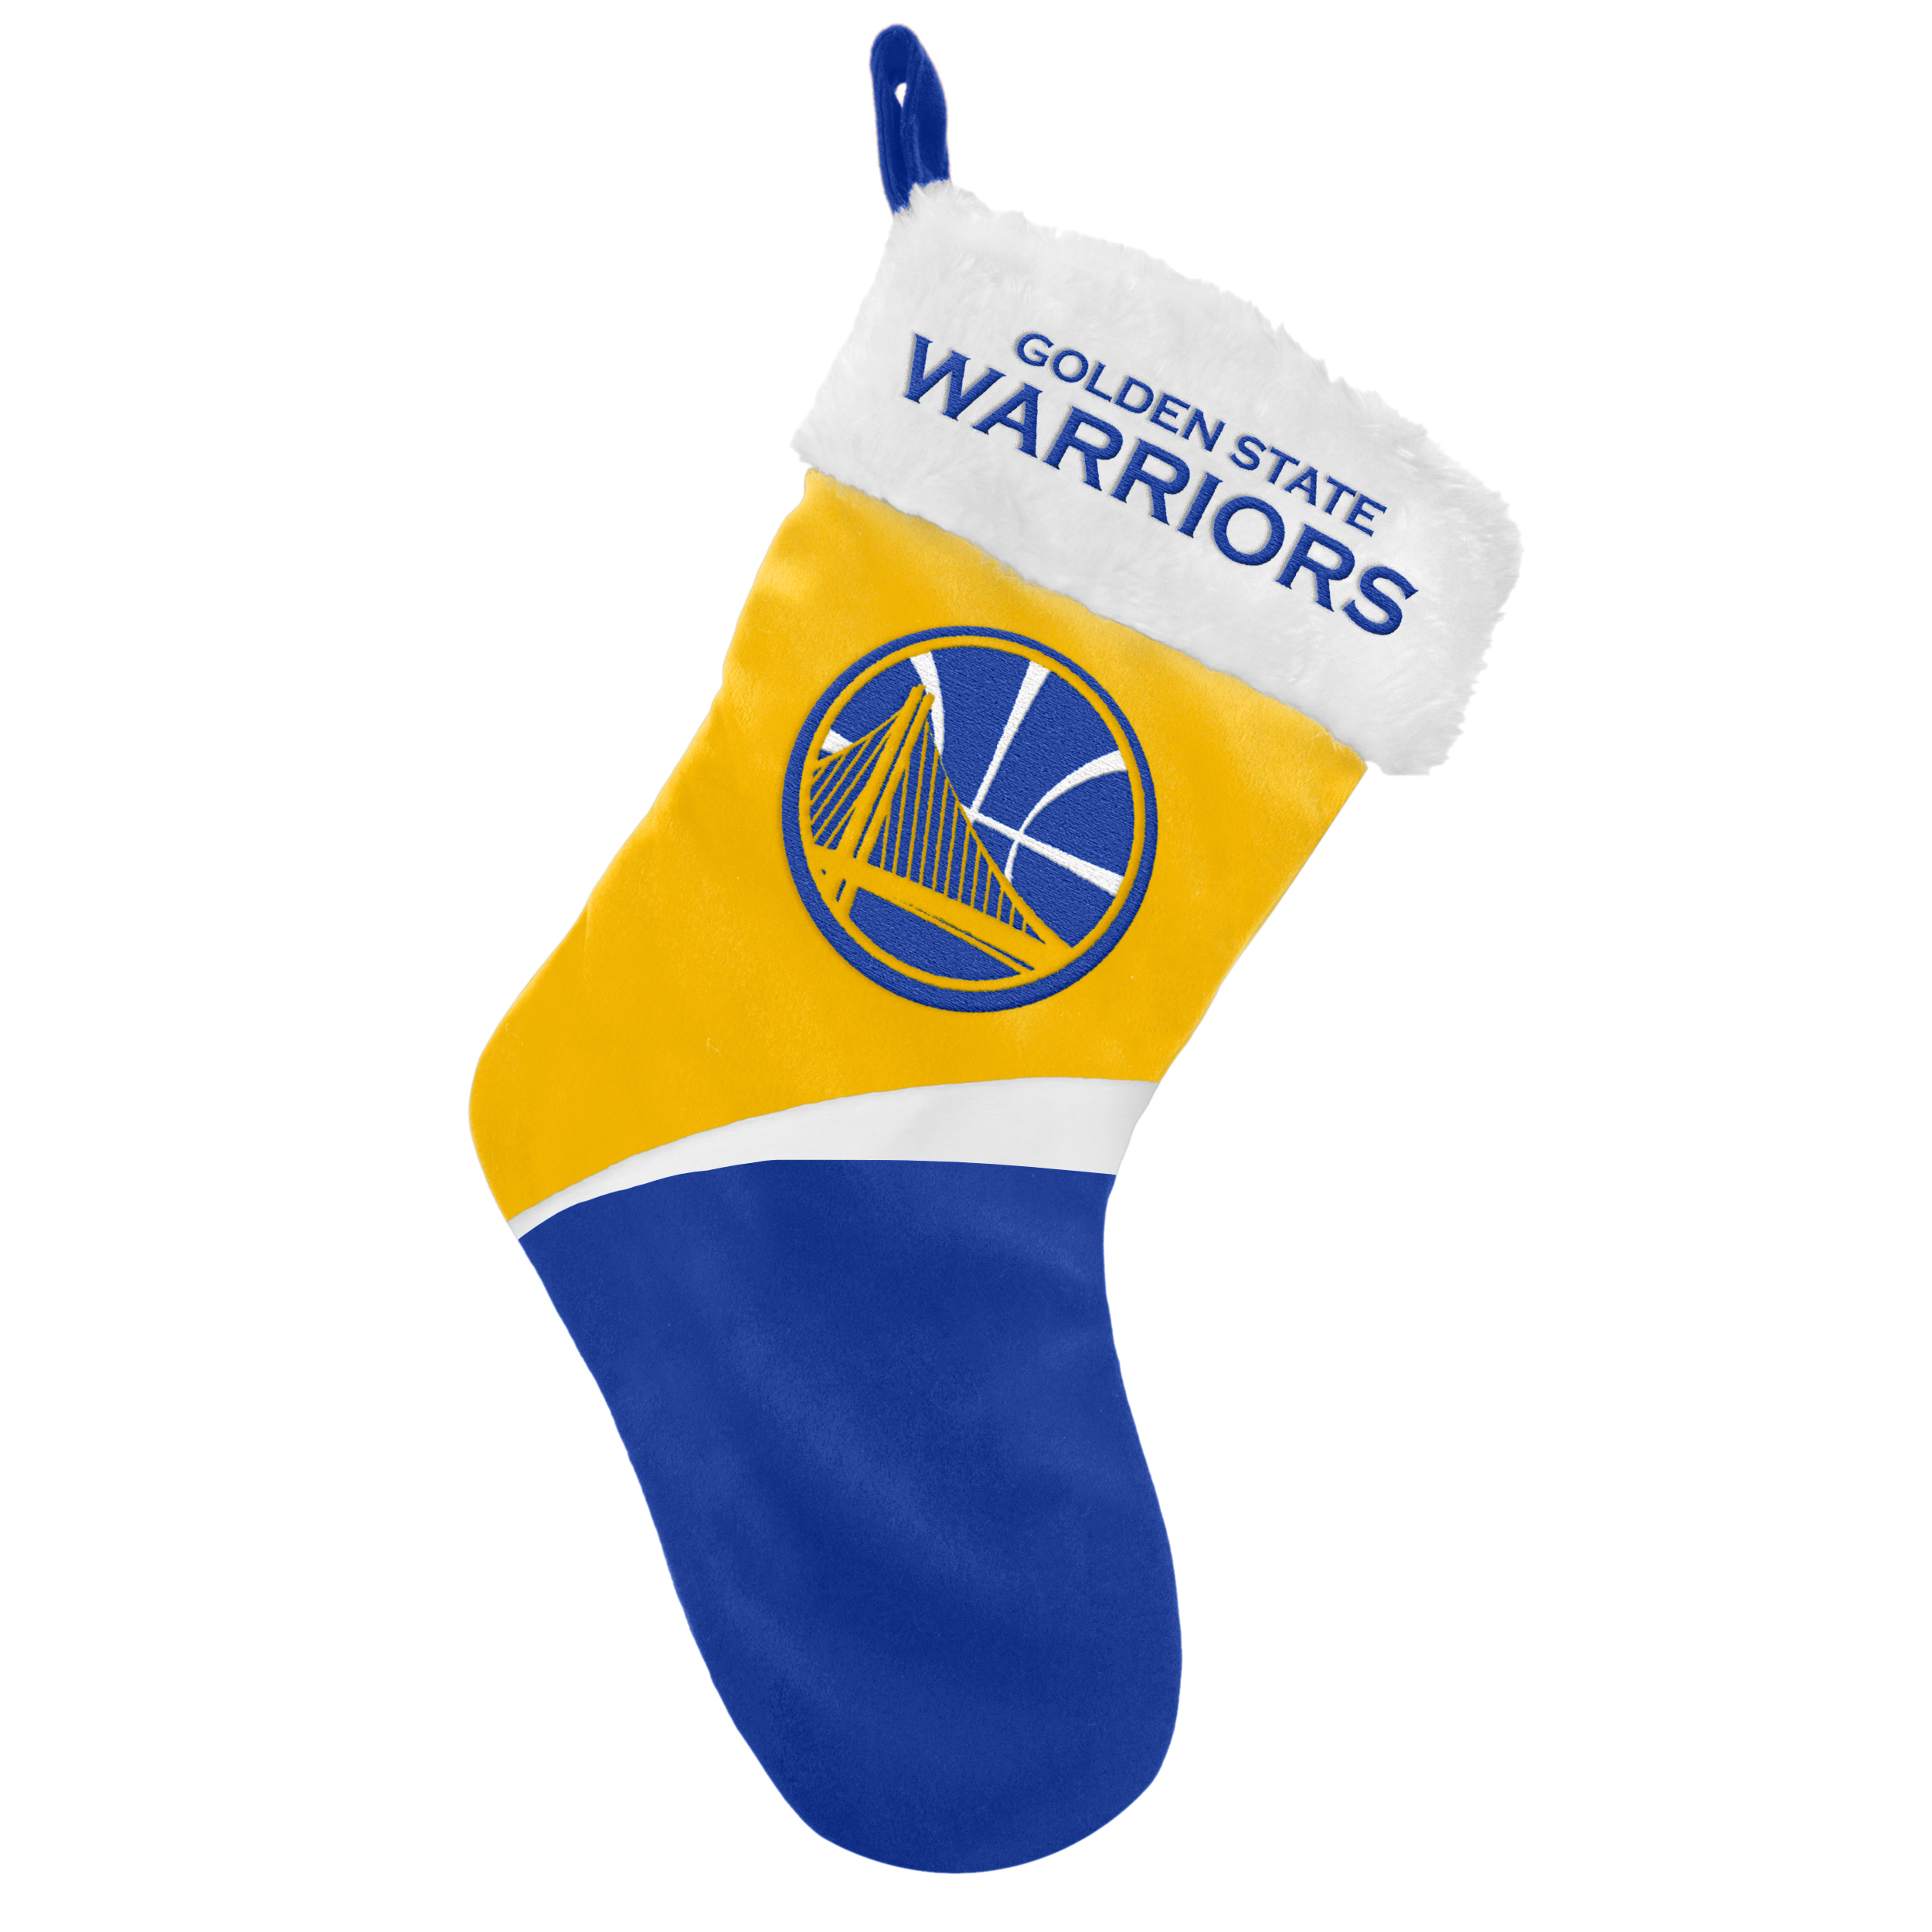 Golden State Warriors ficial NBA Holiday Christmas Stocking by